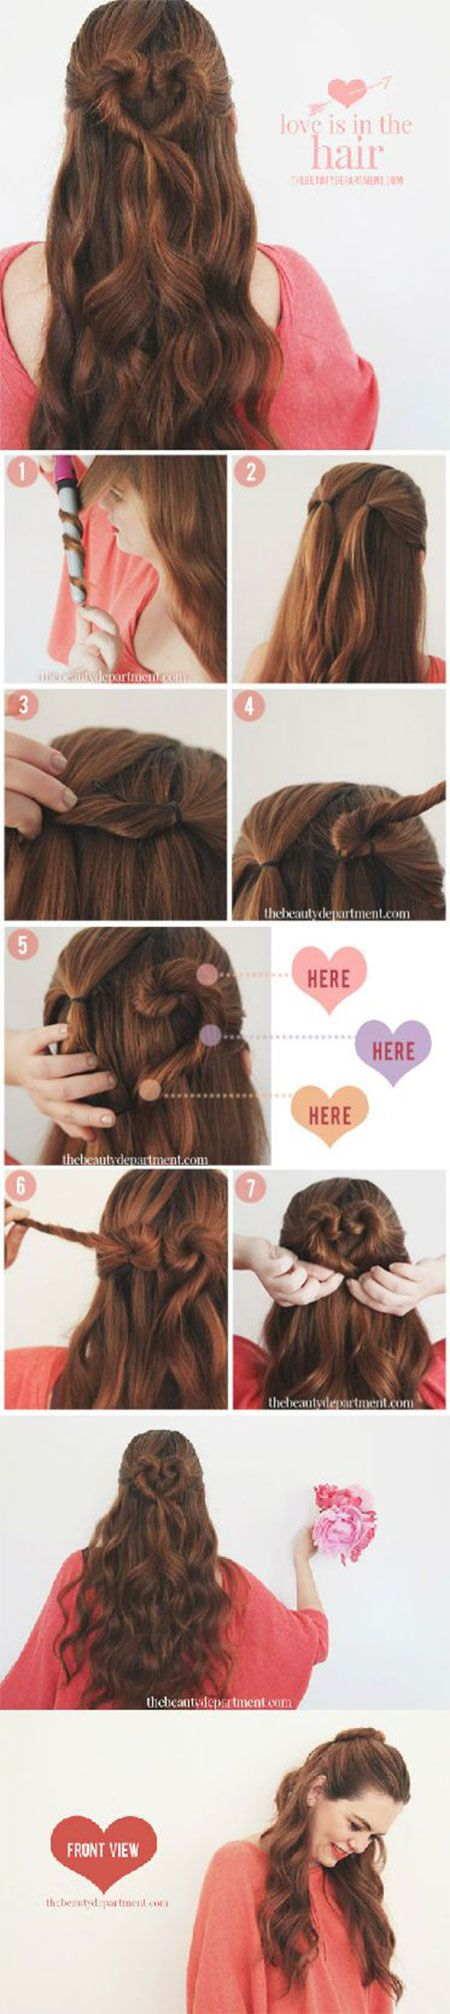 Best Ideas For Makeup Tutorials : Easy-Valentines-Day ...